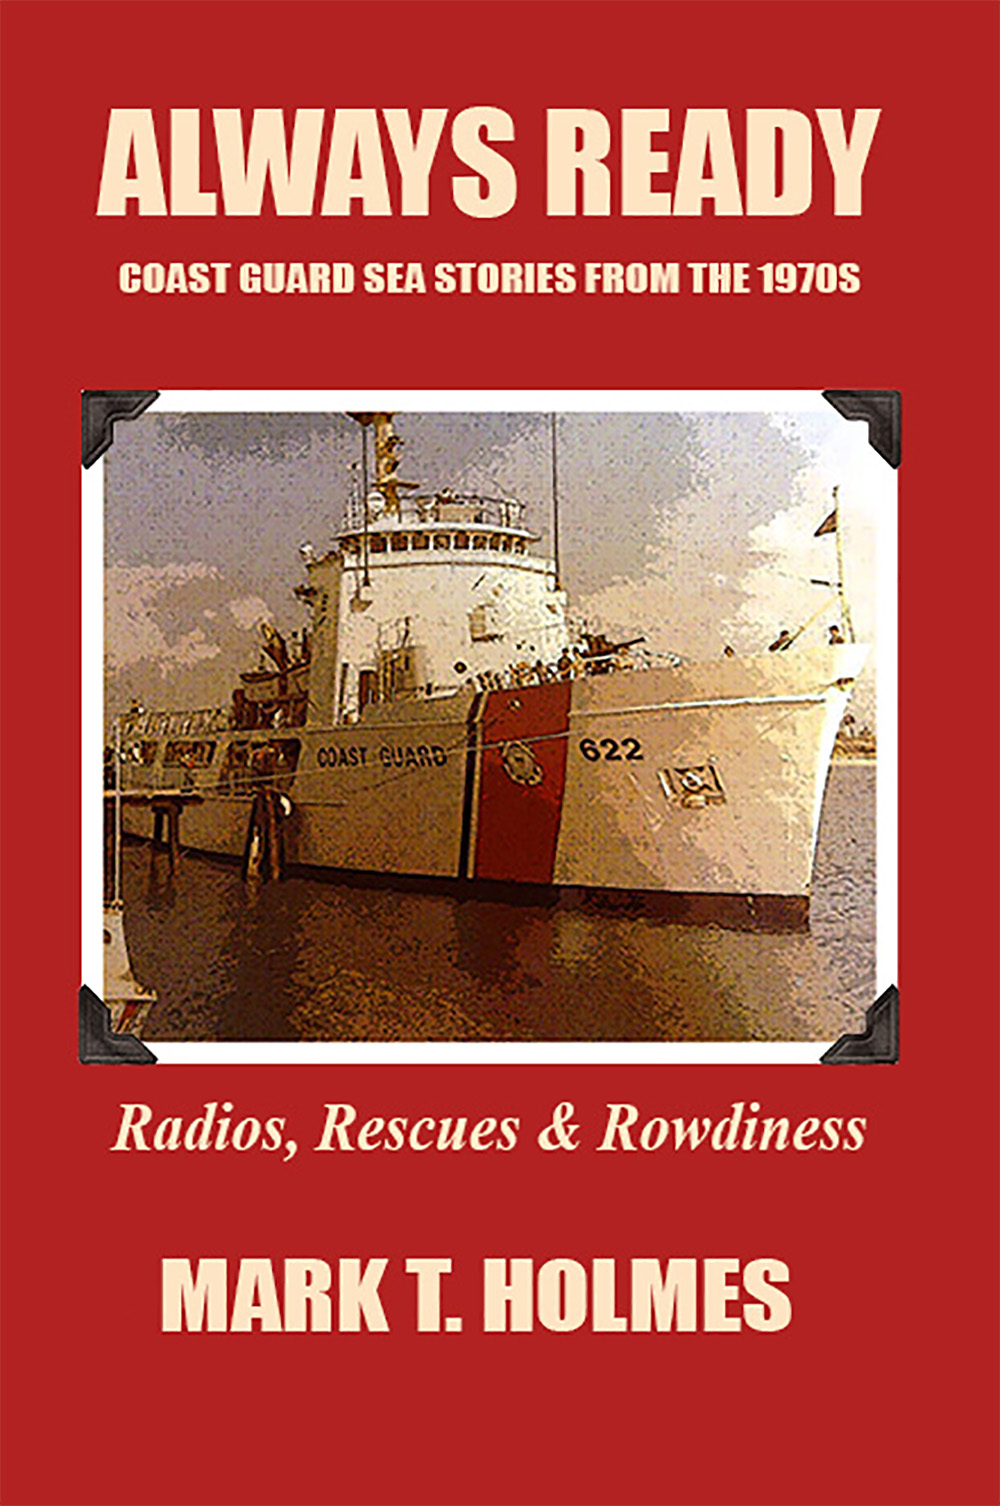 Always Ready – Coast Guard Sea Stories From the 1970s